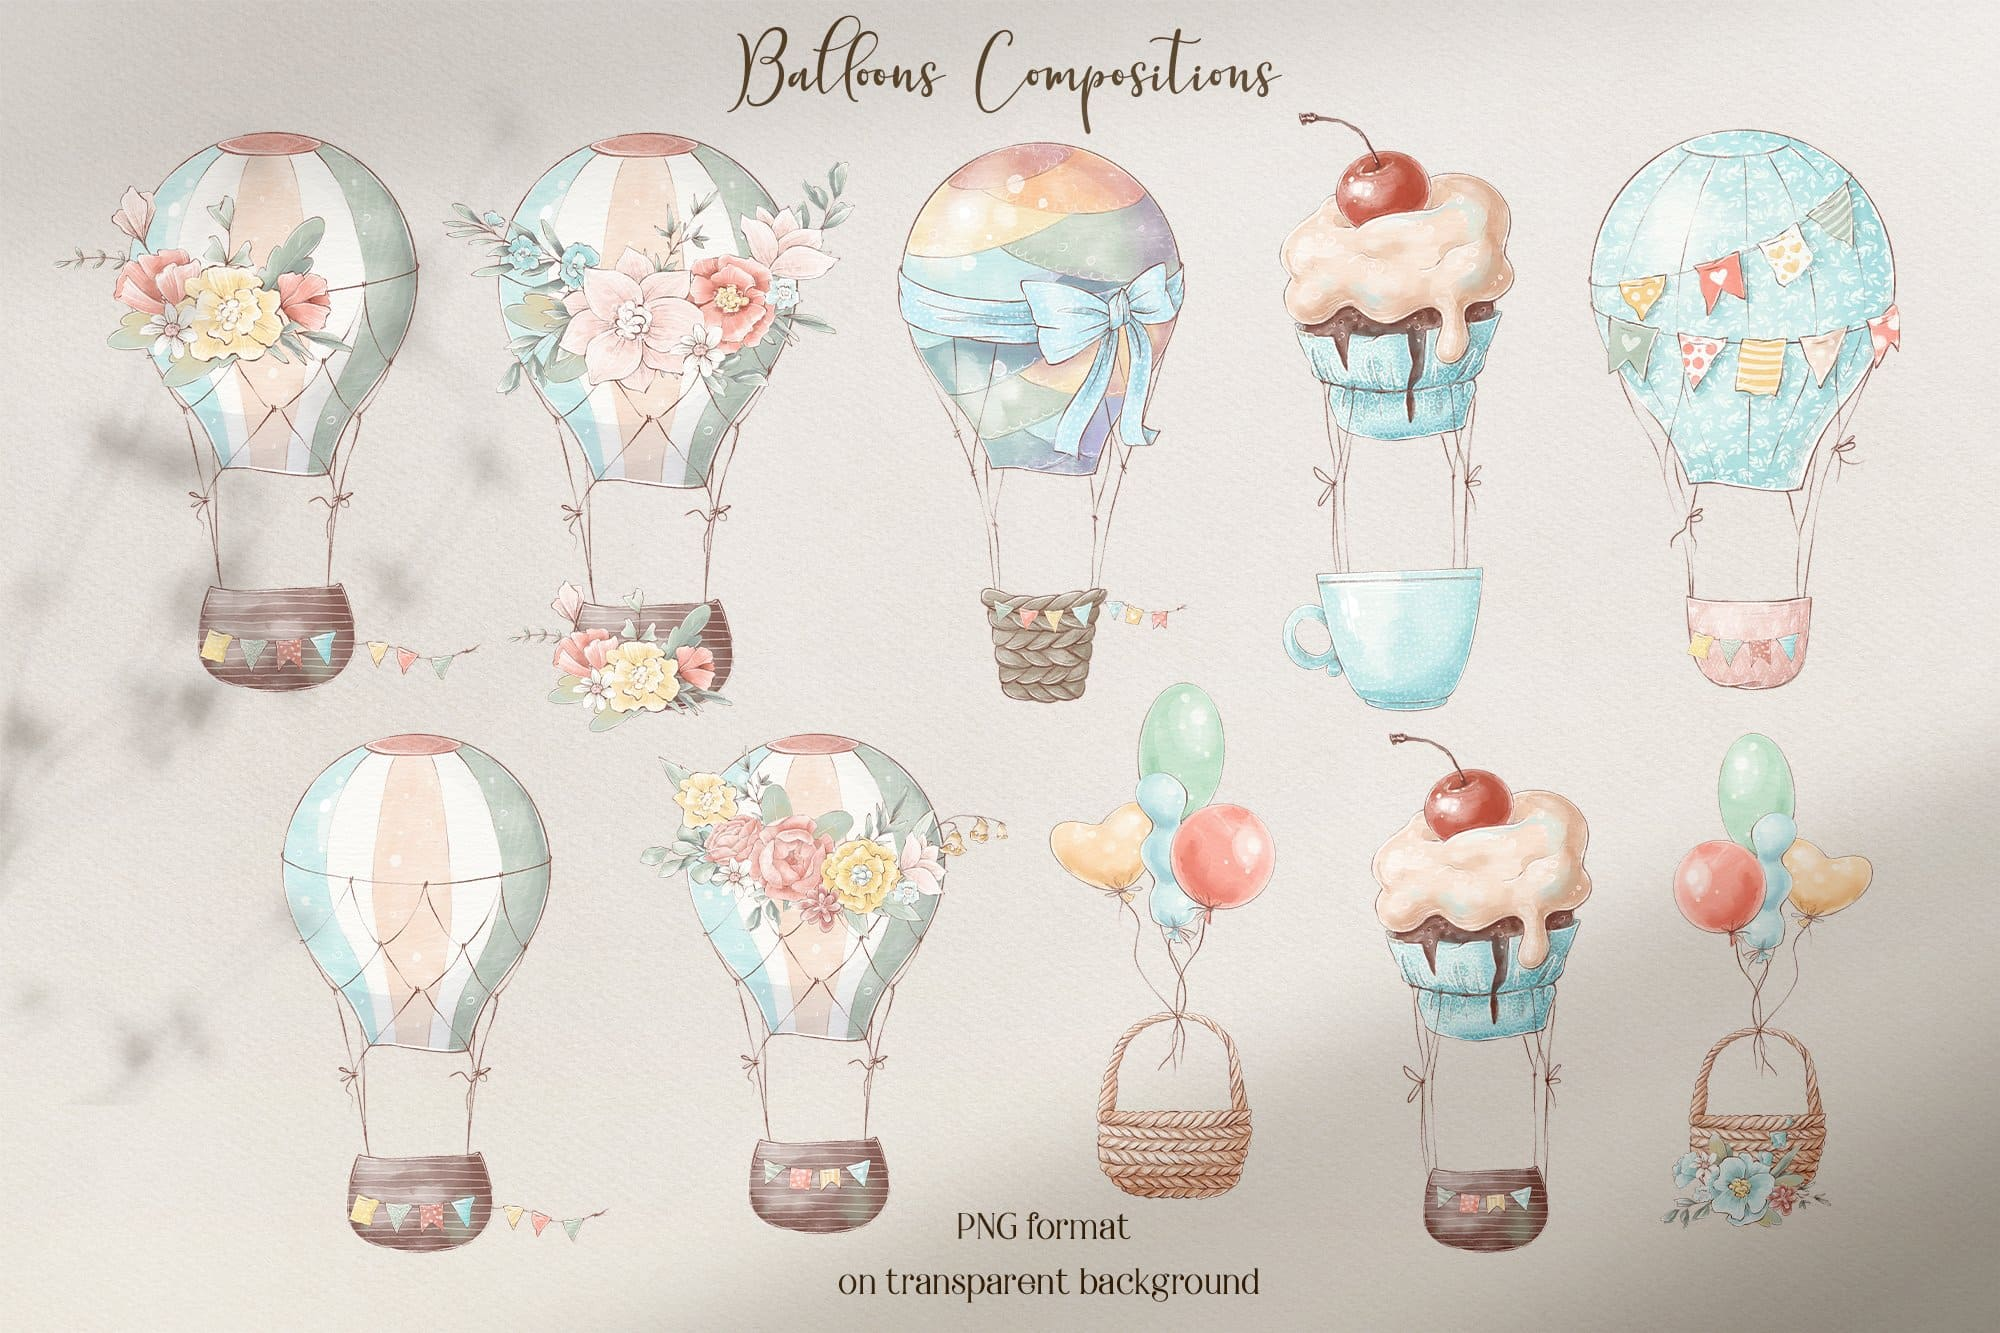 Sweet balloons compositions.